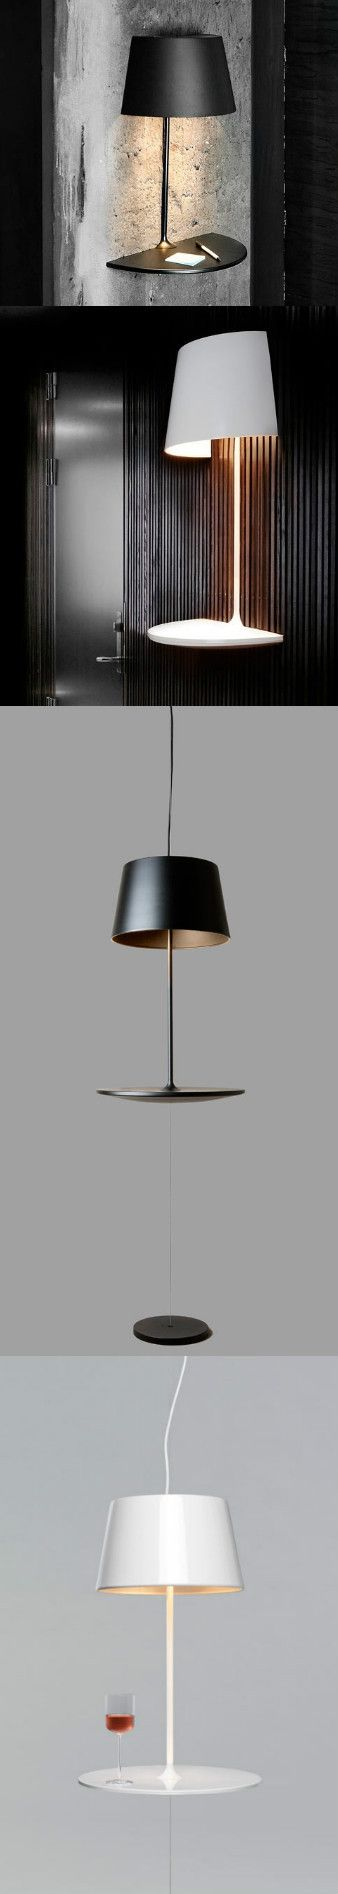 Beauty of half – illusion wall lamp